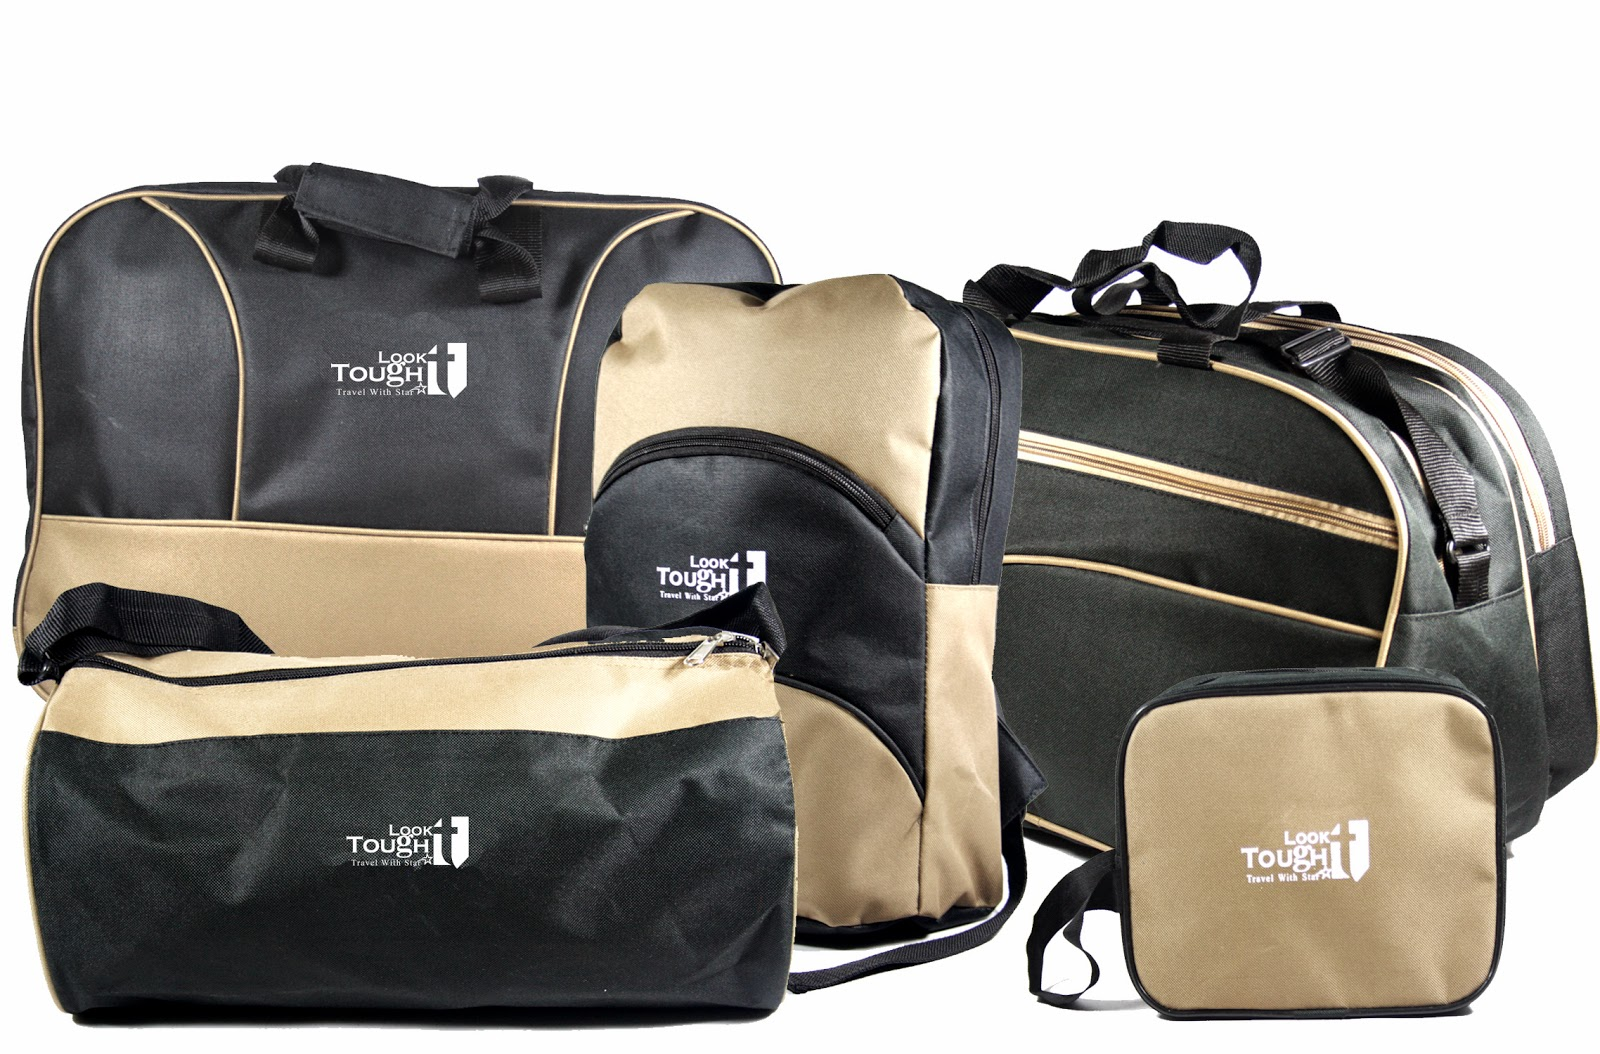 Shopclues : Buy Tough Look Black & Beige Bags Combo At Rs. 1390 only